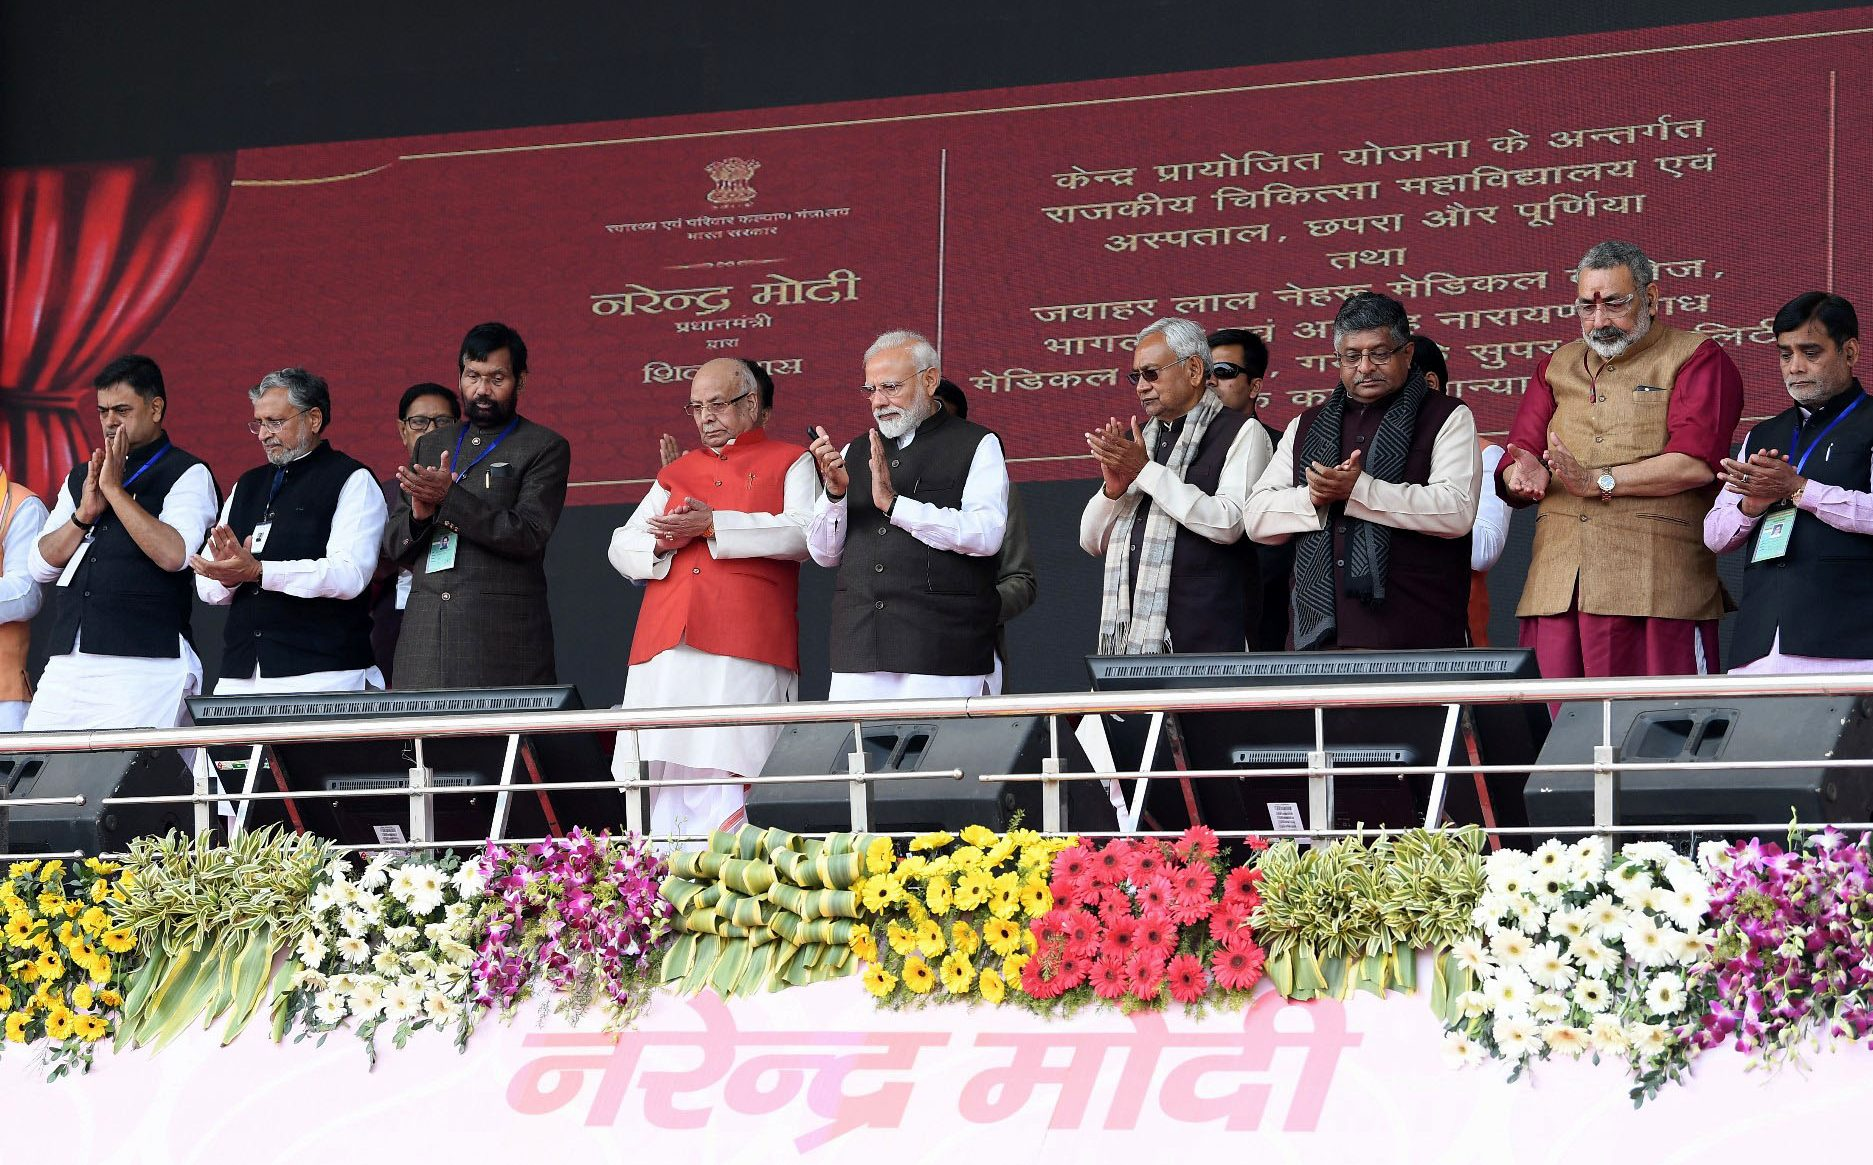 The Prime Minister, Shri Narendra Modi being received by the Governor of Bihar, Shri Lalji Tandon and the Chief Minister of Bihar, Shri Nitish Kumar, on his arrival at Patna, Bihar on February 17, 2019.